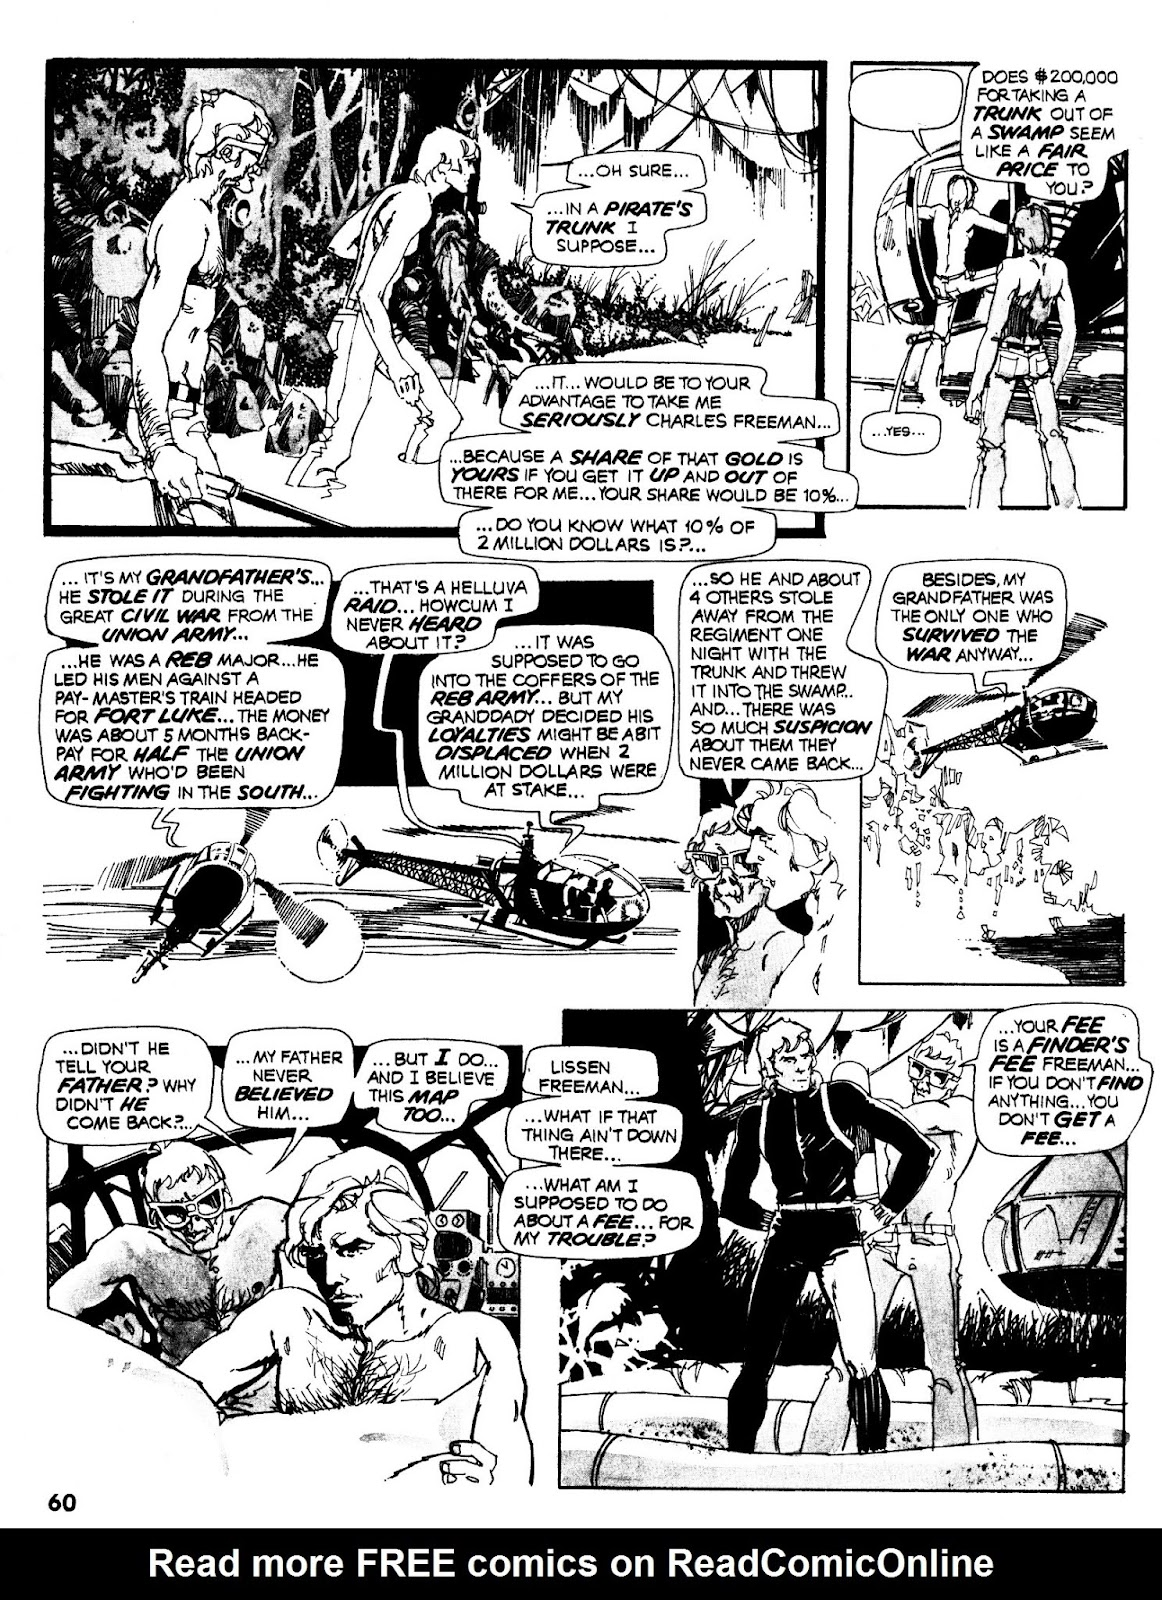 Scream (1973) issue 3 - Page 60